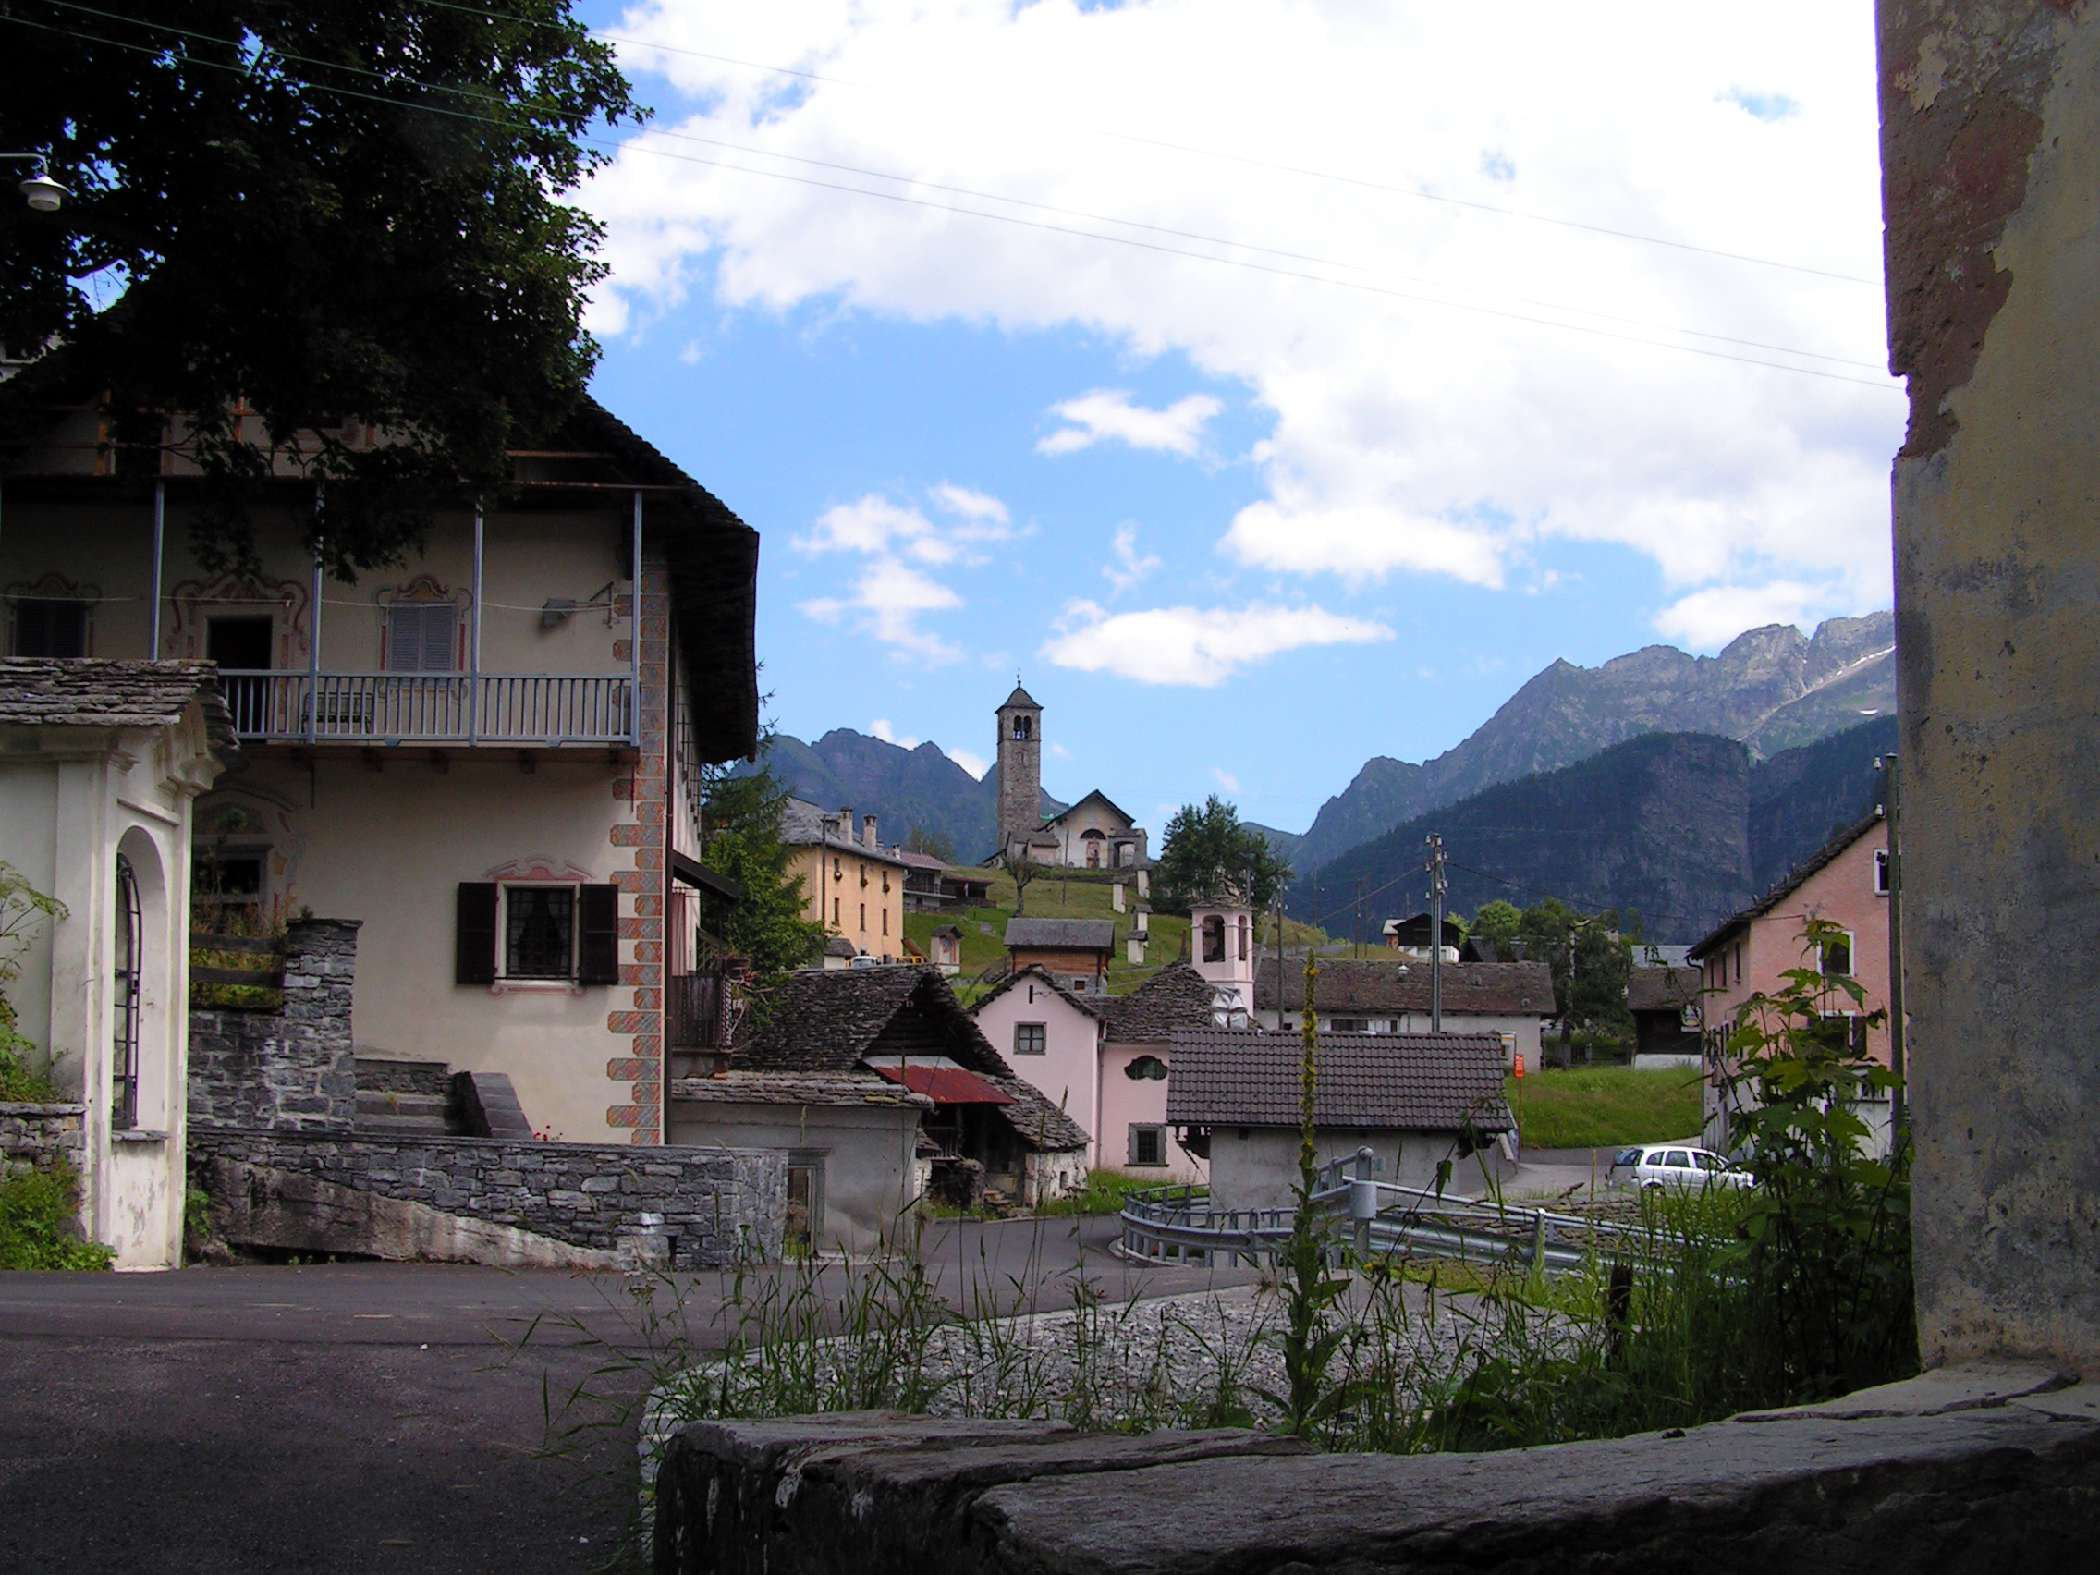 Campo (Vallemaggia)